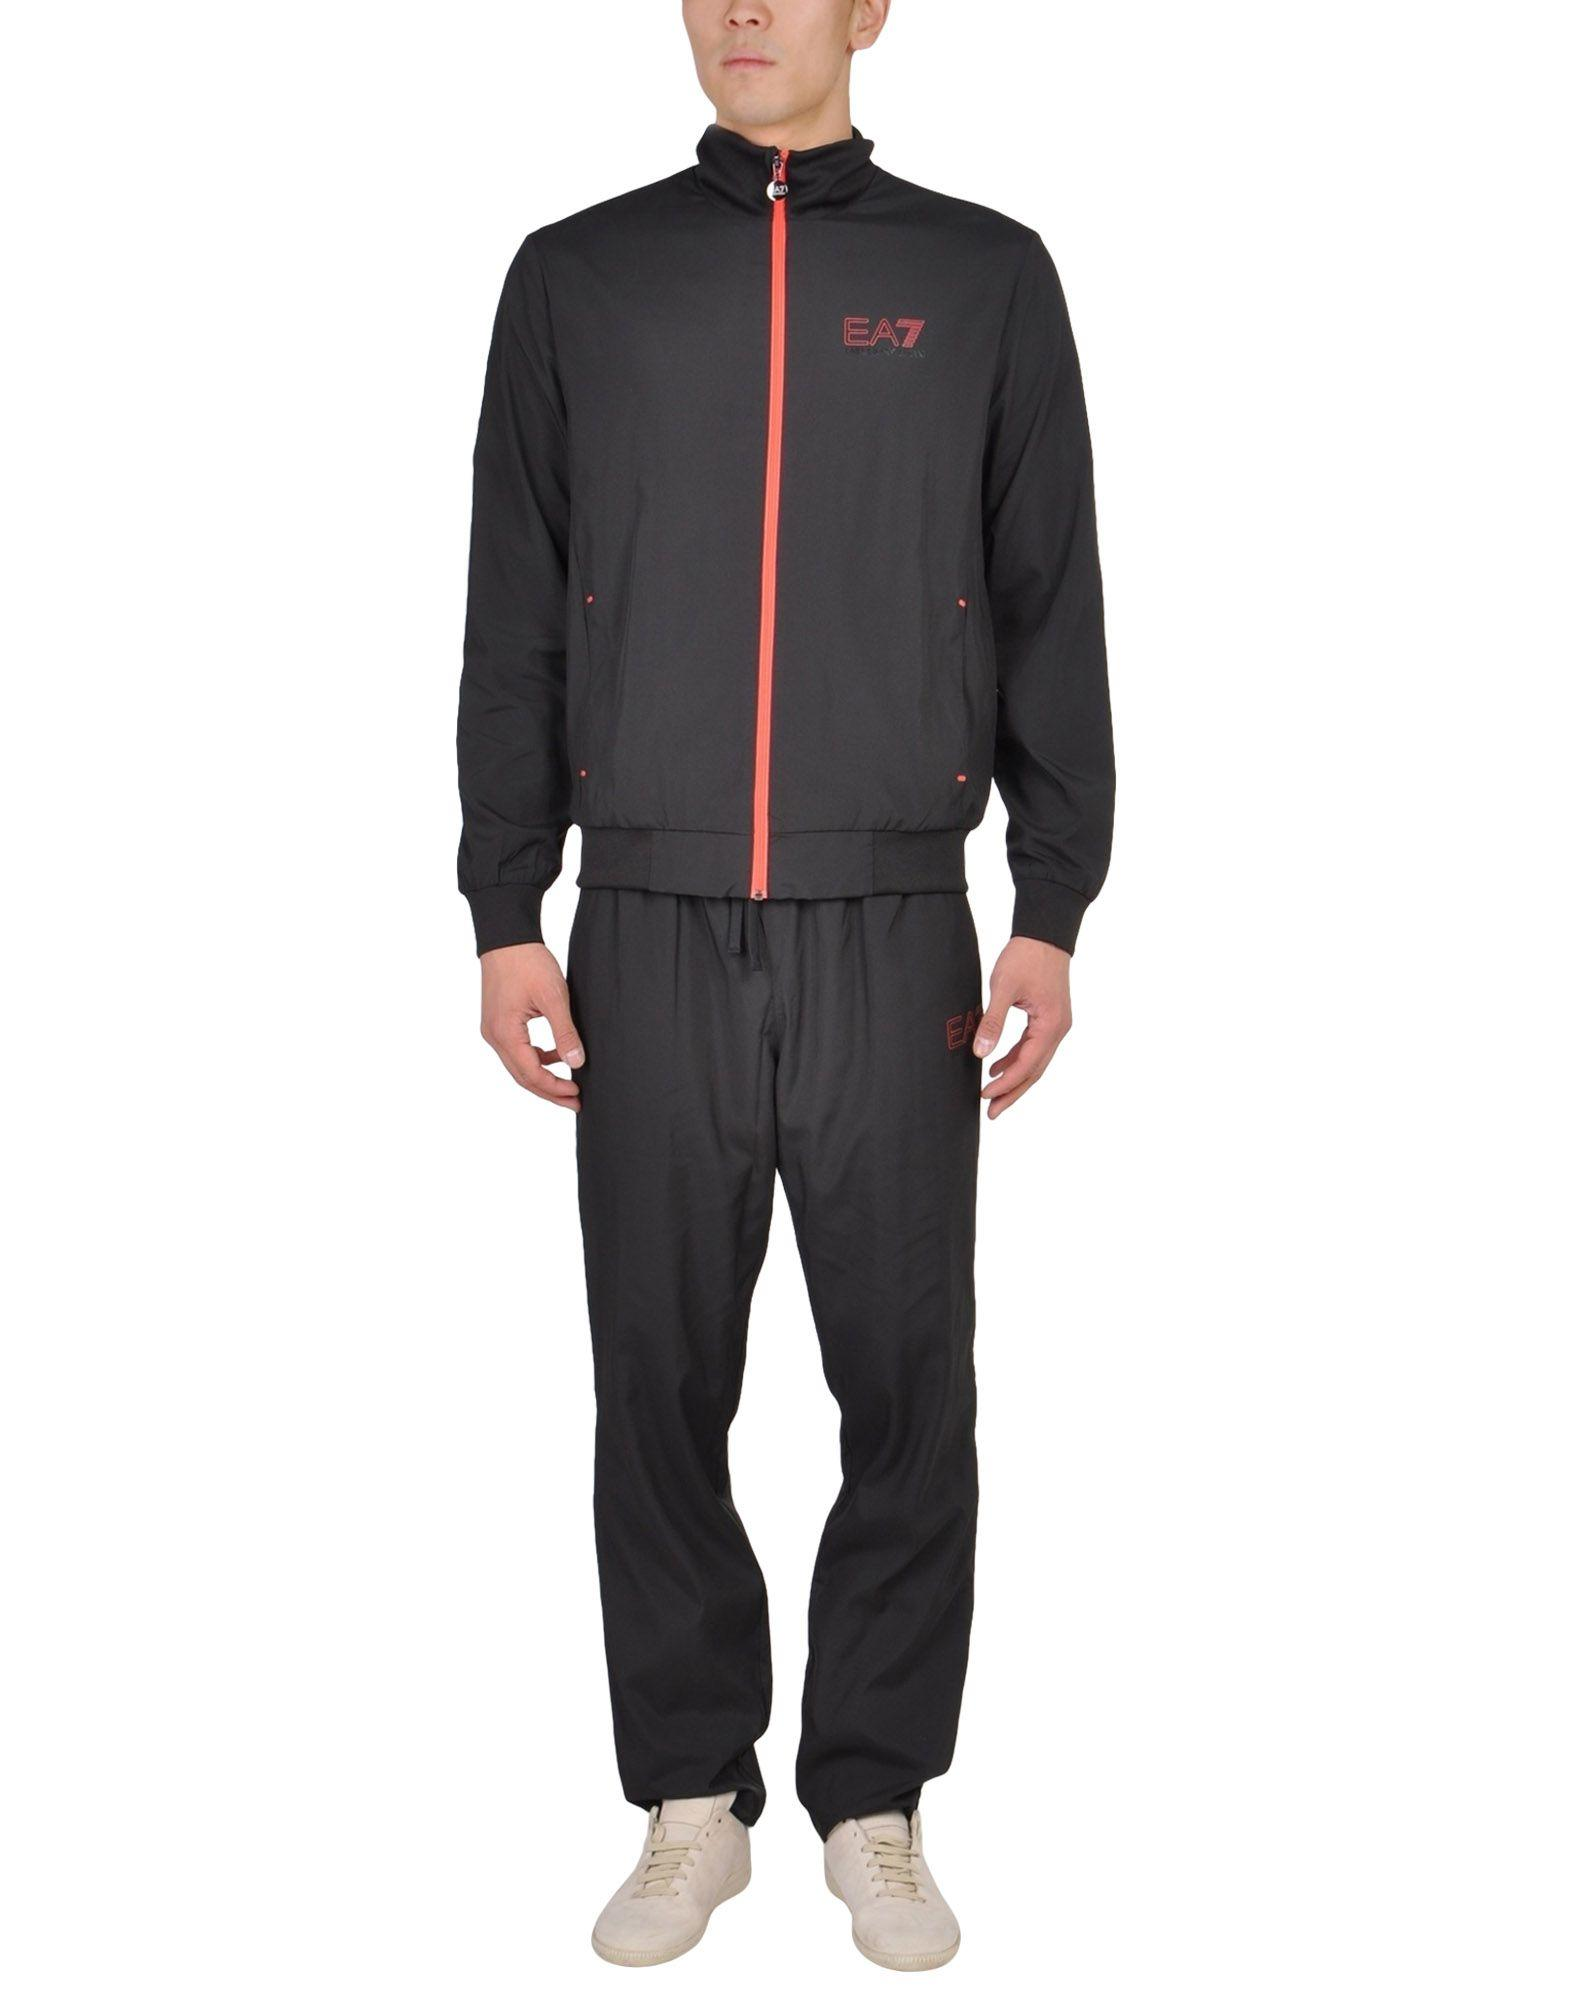 Ea7 Sweatsuit In Black